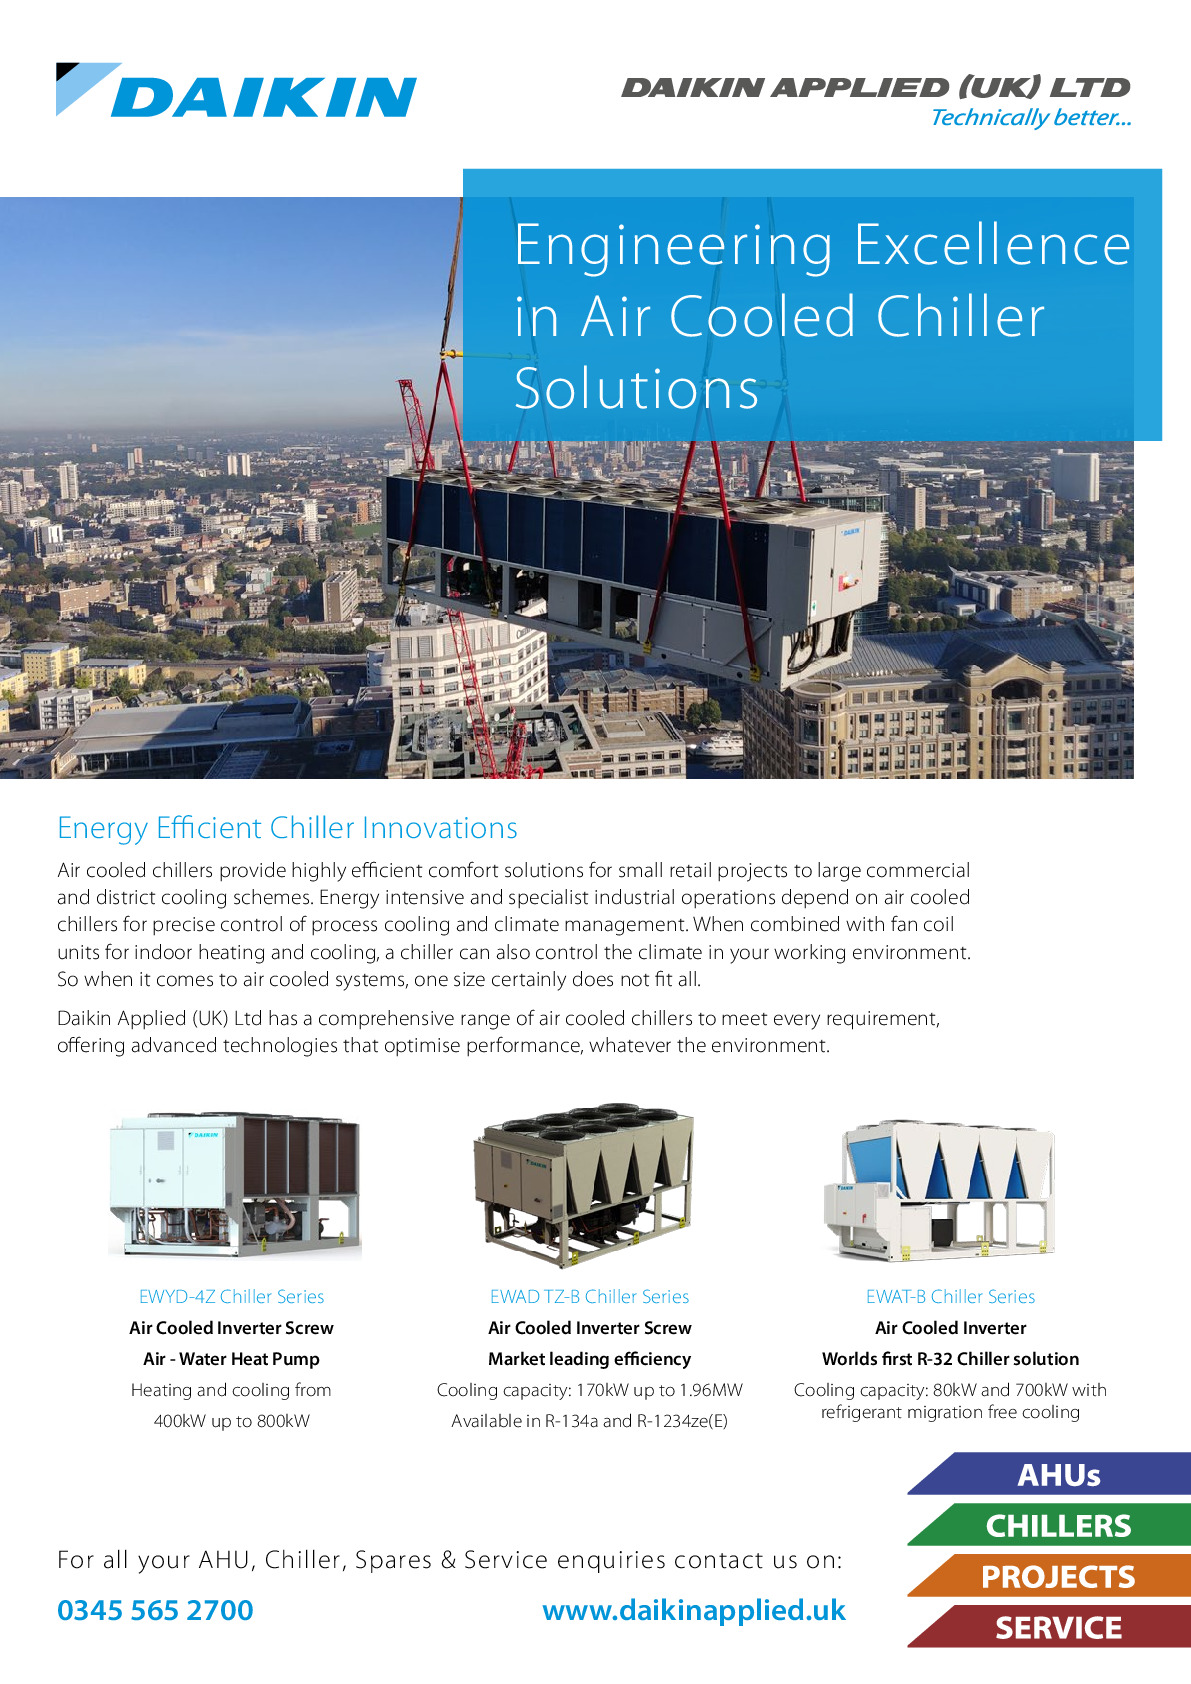 Daikin Applied (uk) Ltd - Ahu & Chiller Specialist advertisement 1 thumbnail